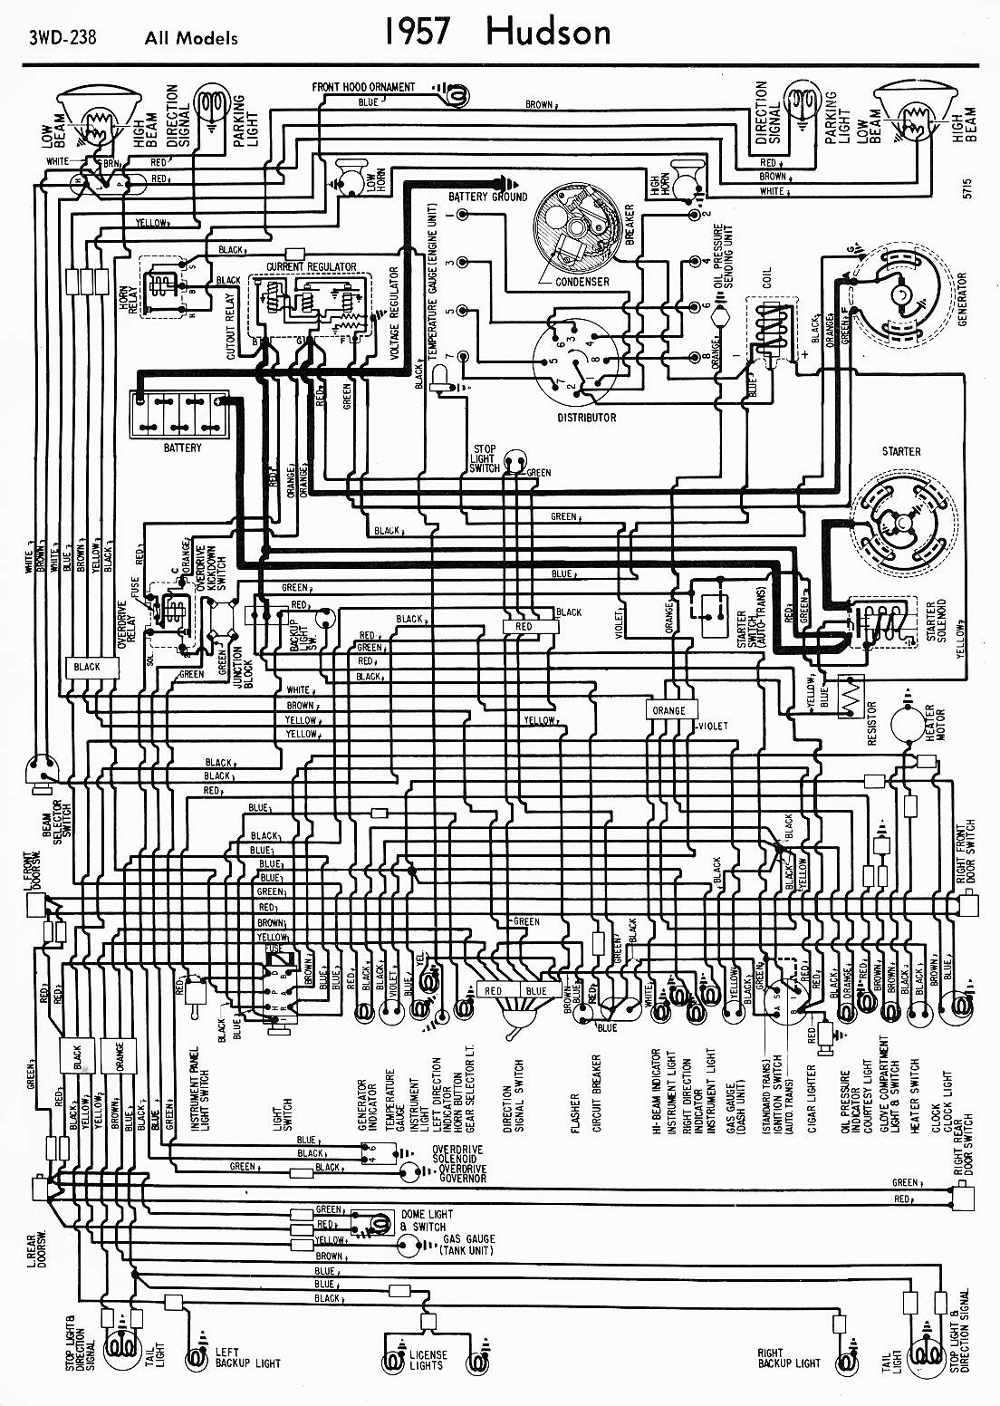 Hudson Car Manuals Wiring Diagrams Pdf Fault Codes Automotive Download